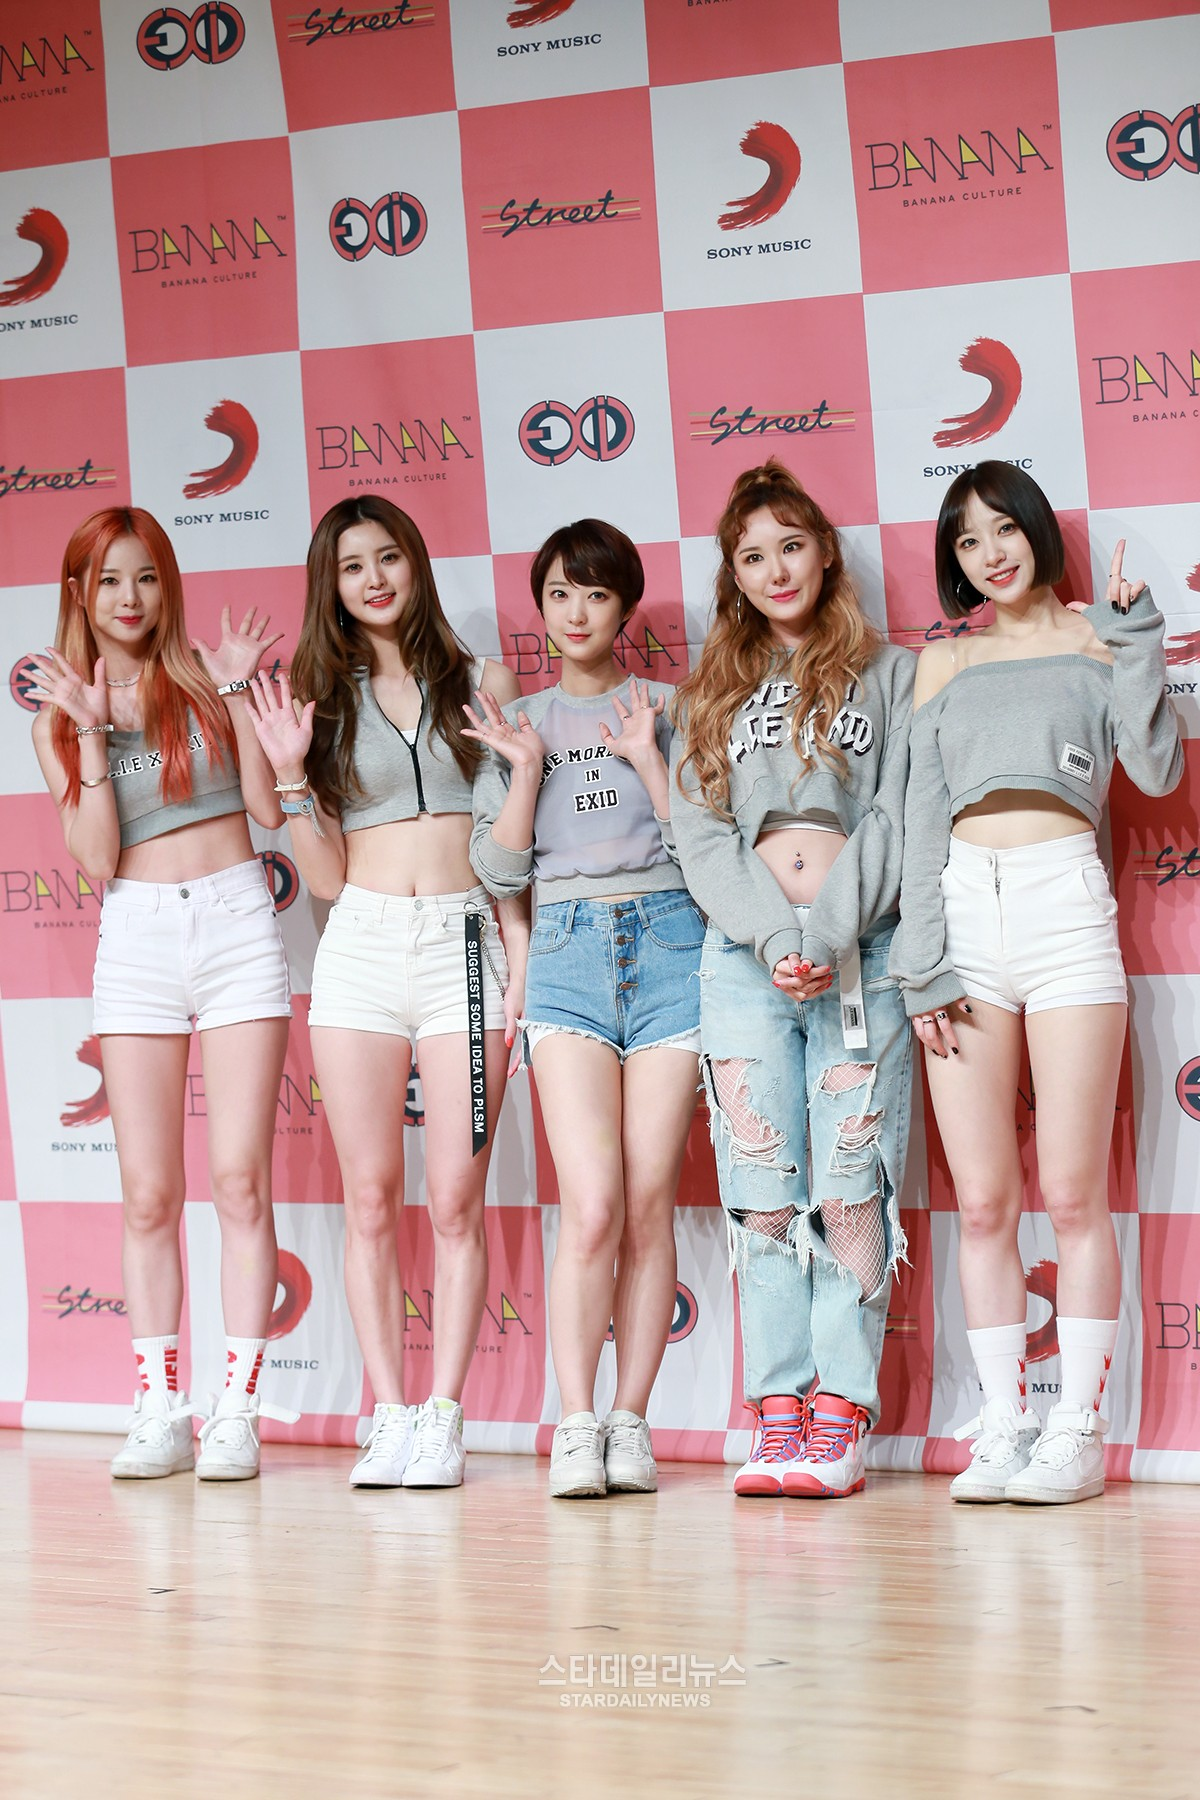 EXID Reveals How Meaningful Their Comeback Album Is